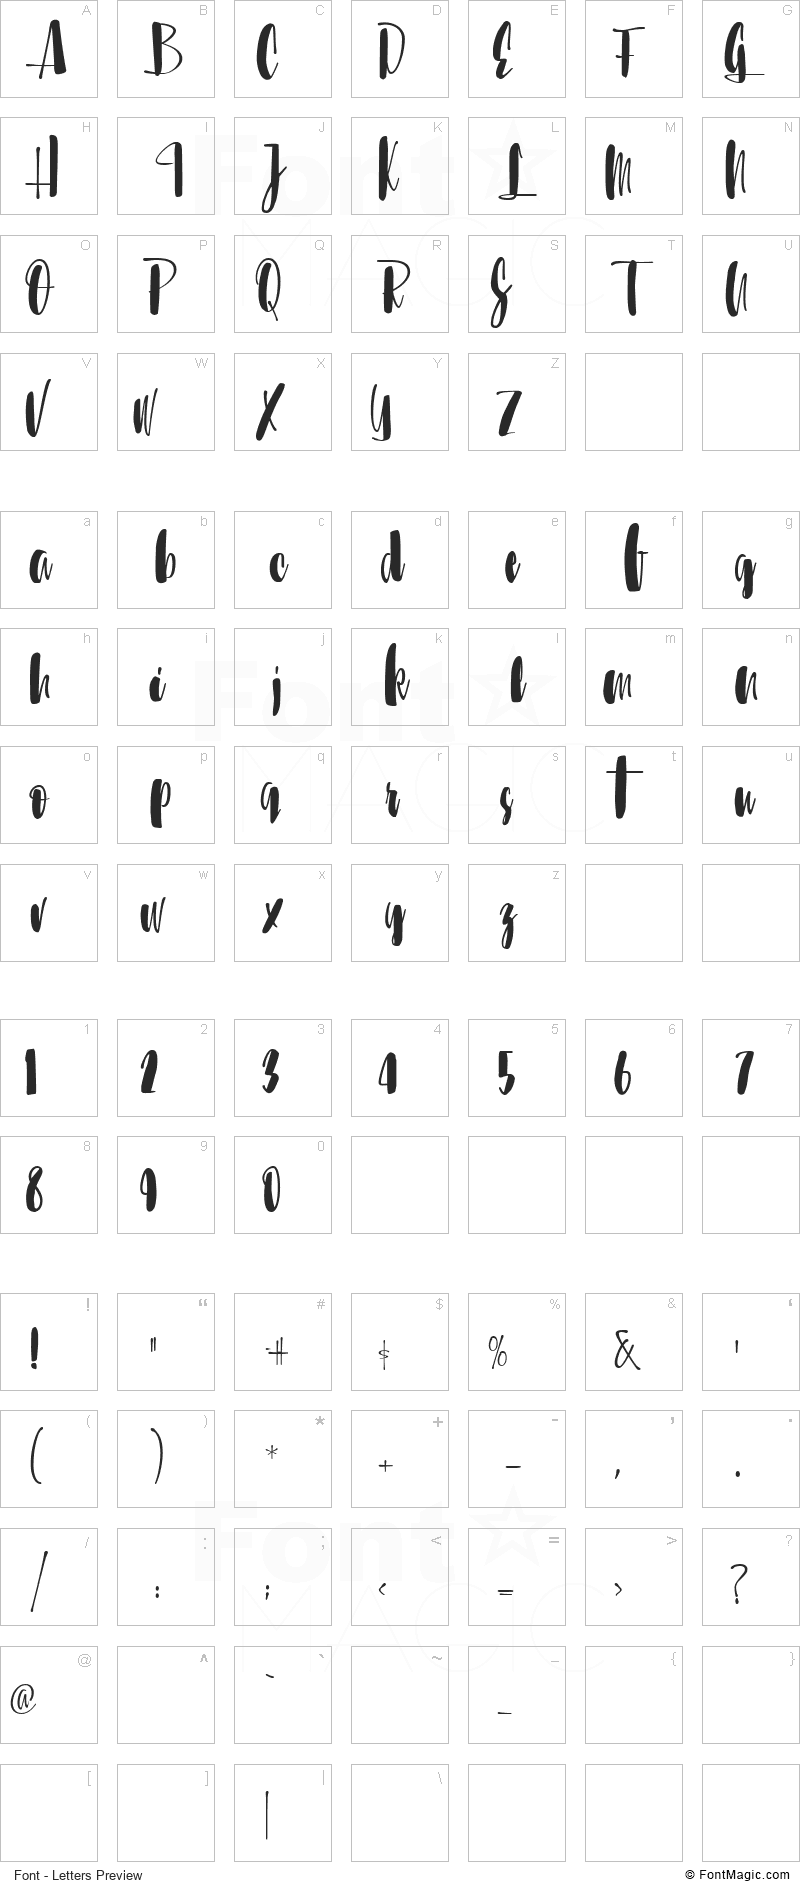 Sunbreath Font - All Latters Preview Chart